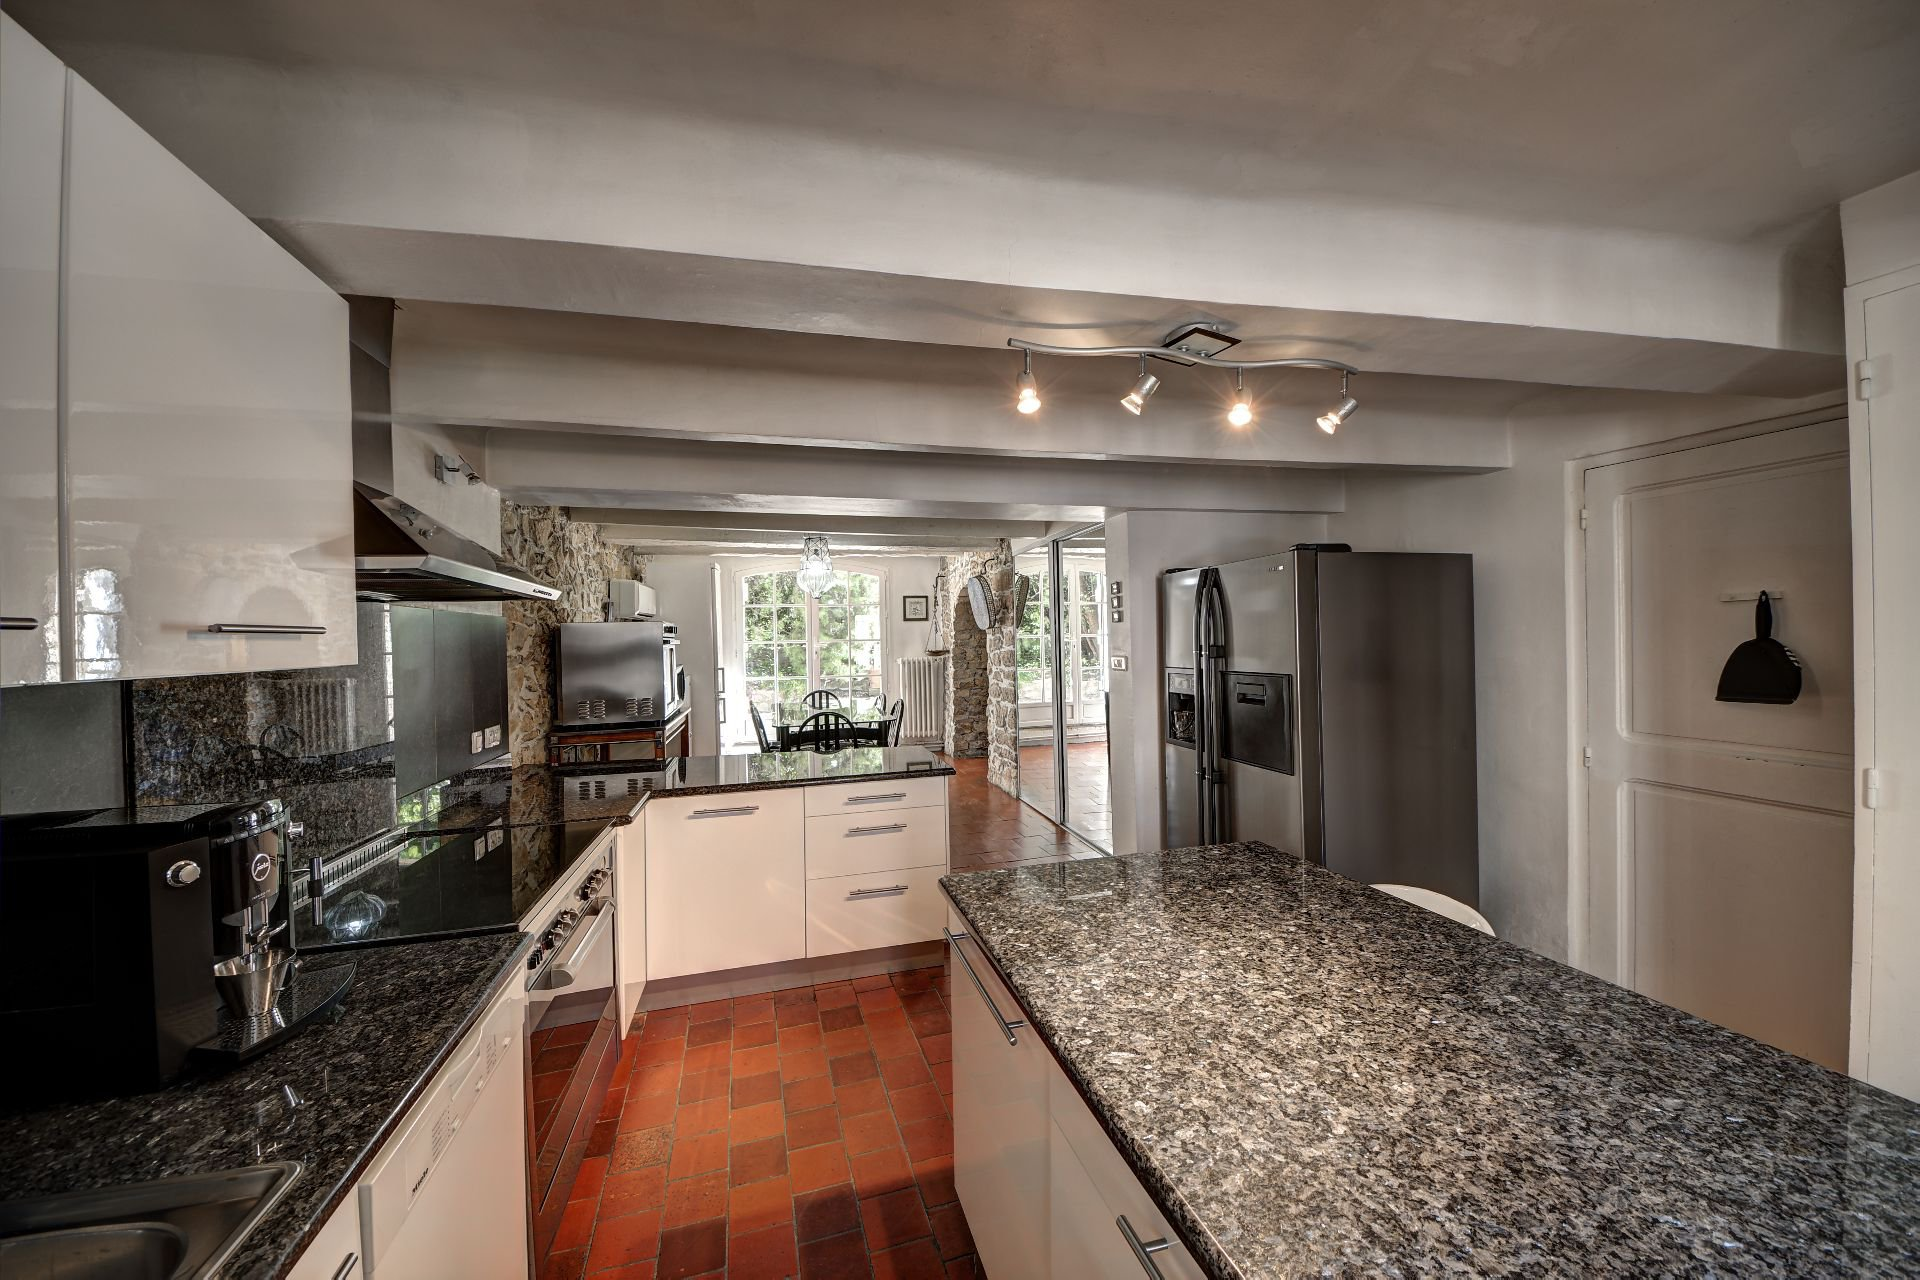 Kitchen of the guest house with garden and pool Rocbaron, Var, Provence